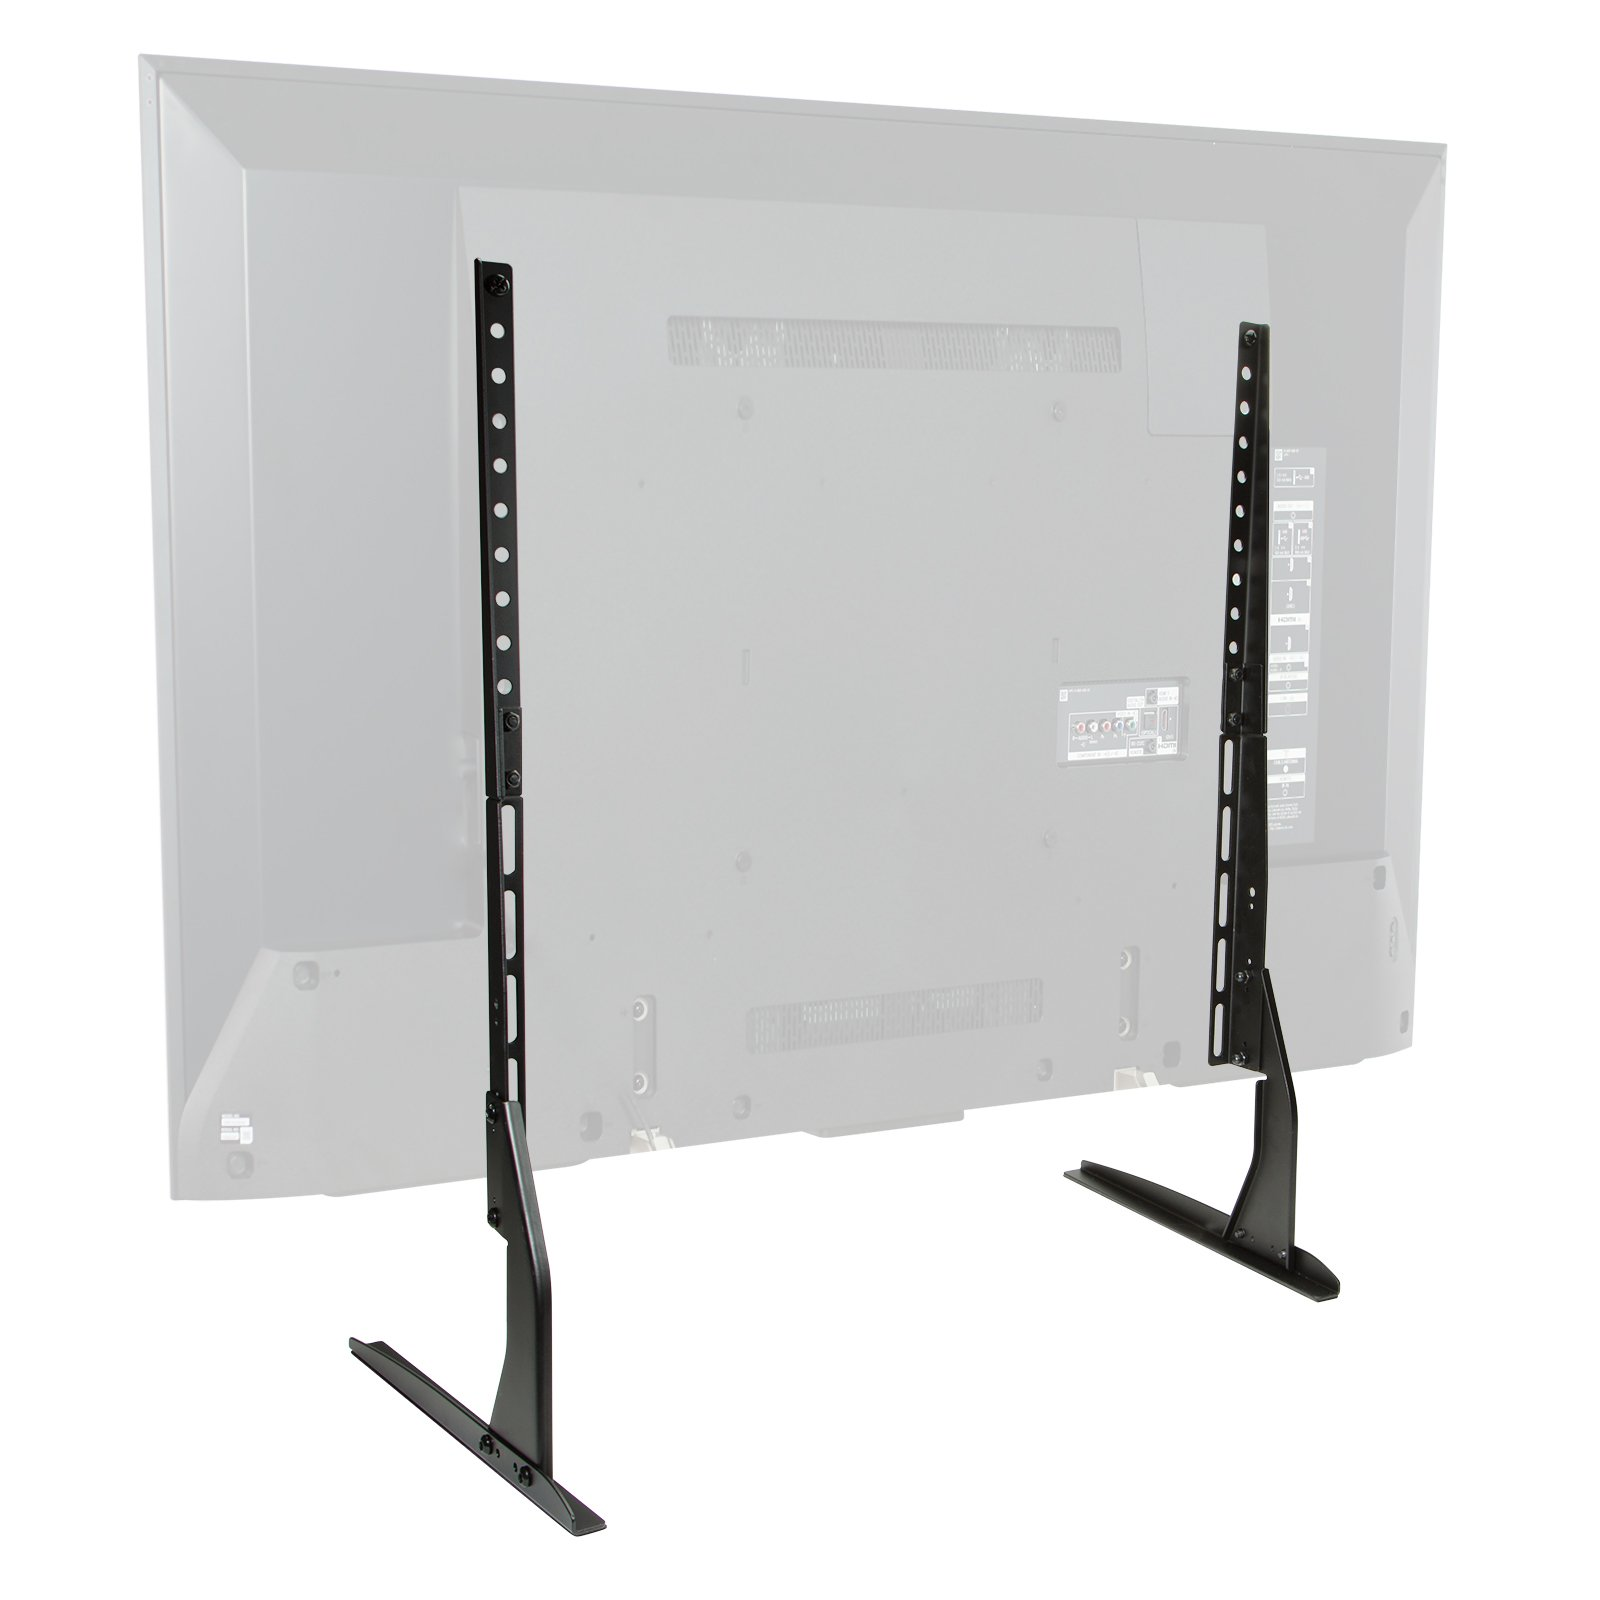 Mount Factory Modern Tabletop TV Stand - Universal Flat Screen Base Replacement for 24'' 32'' 40'' 42'' 50'' 55'' 60'' 65'' Screens by Mount Factory